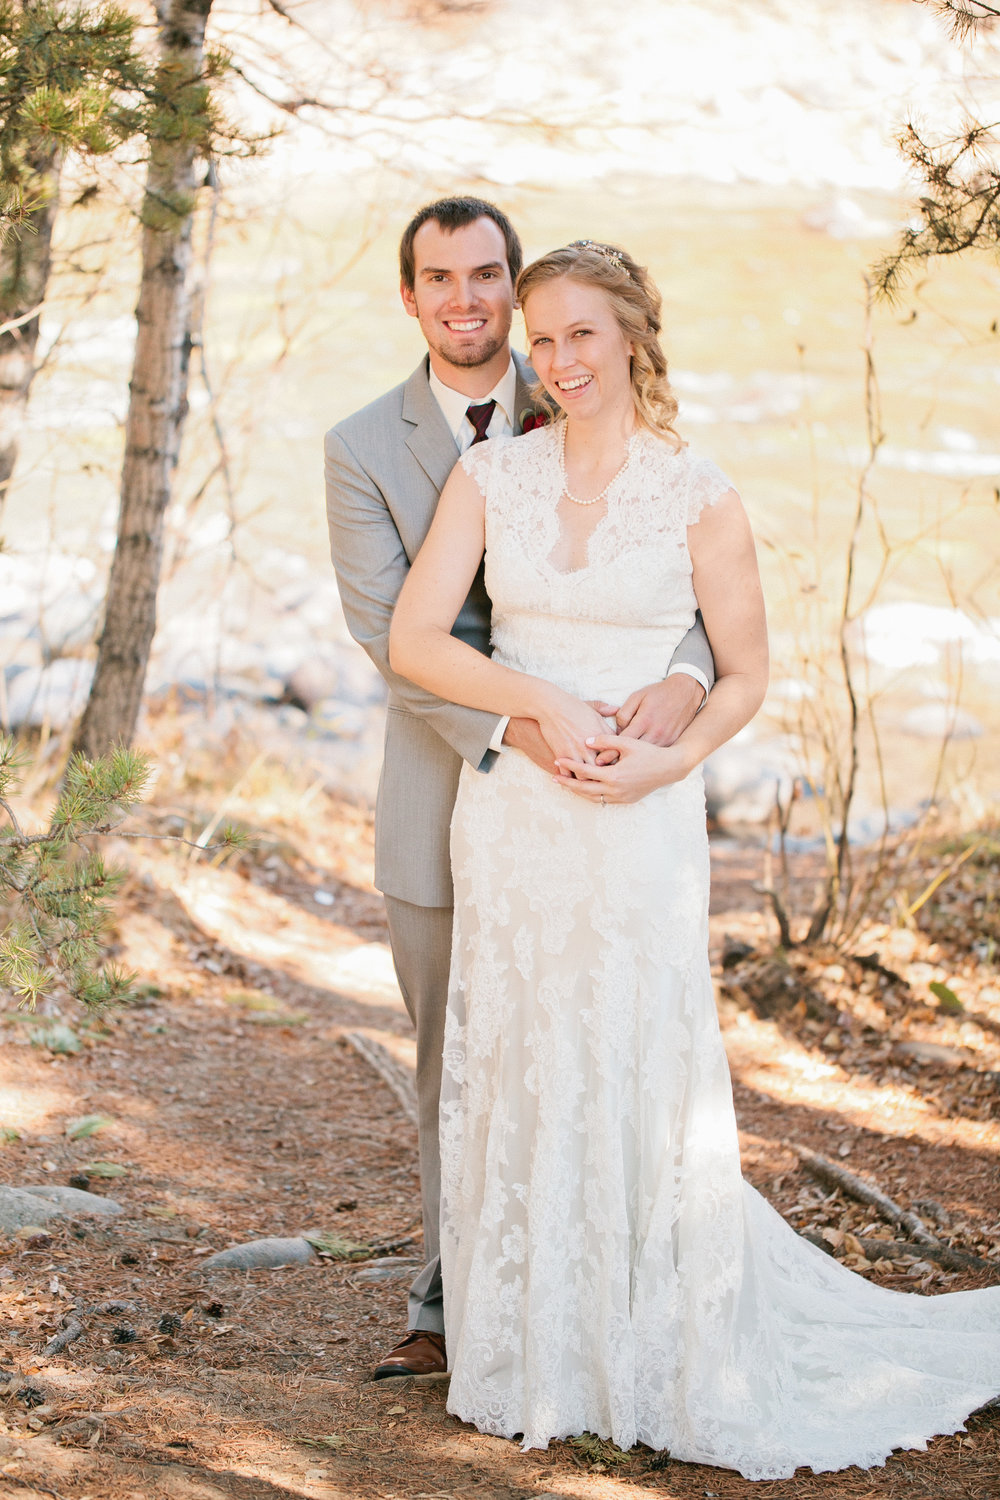 outdoor wedding in Colorado mountains by stream groom wearing a grey suit